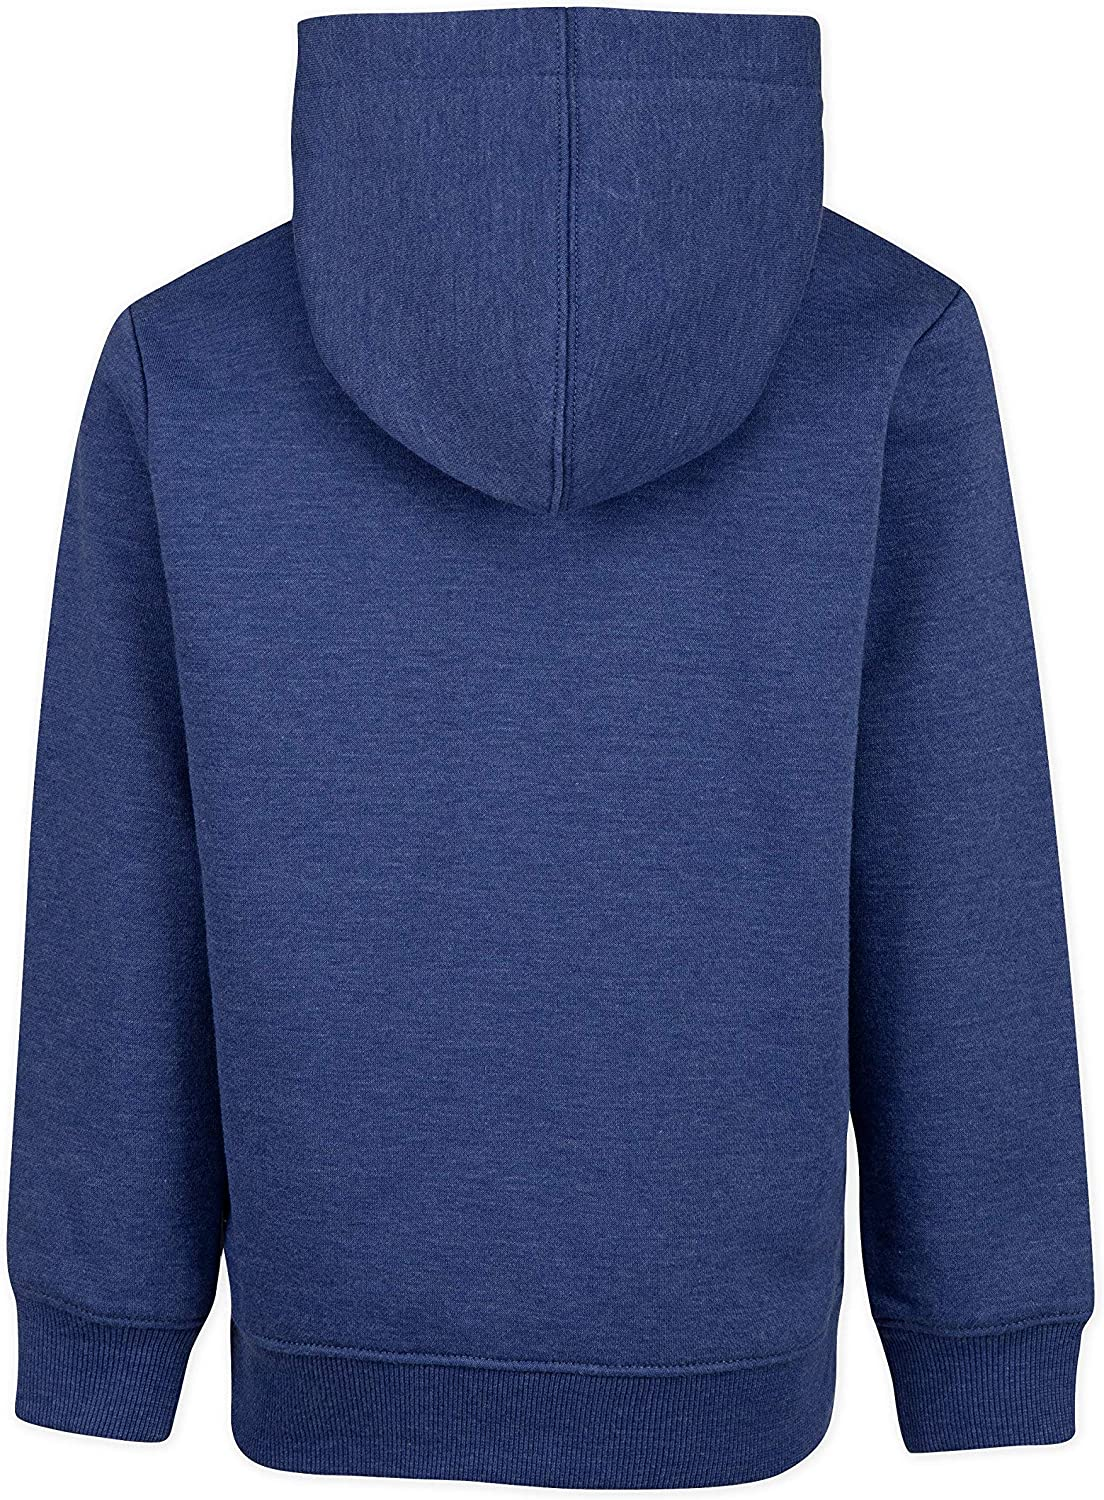 Big Kids Hurley Kids Boys Sueded Fleece One and Only Graphic Pullover Hoodie